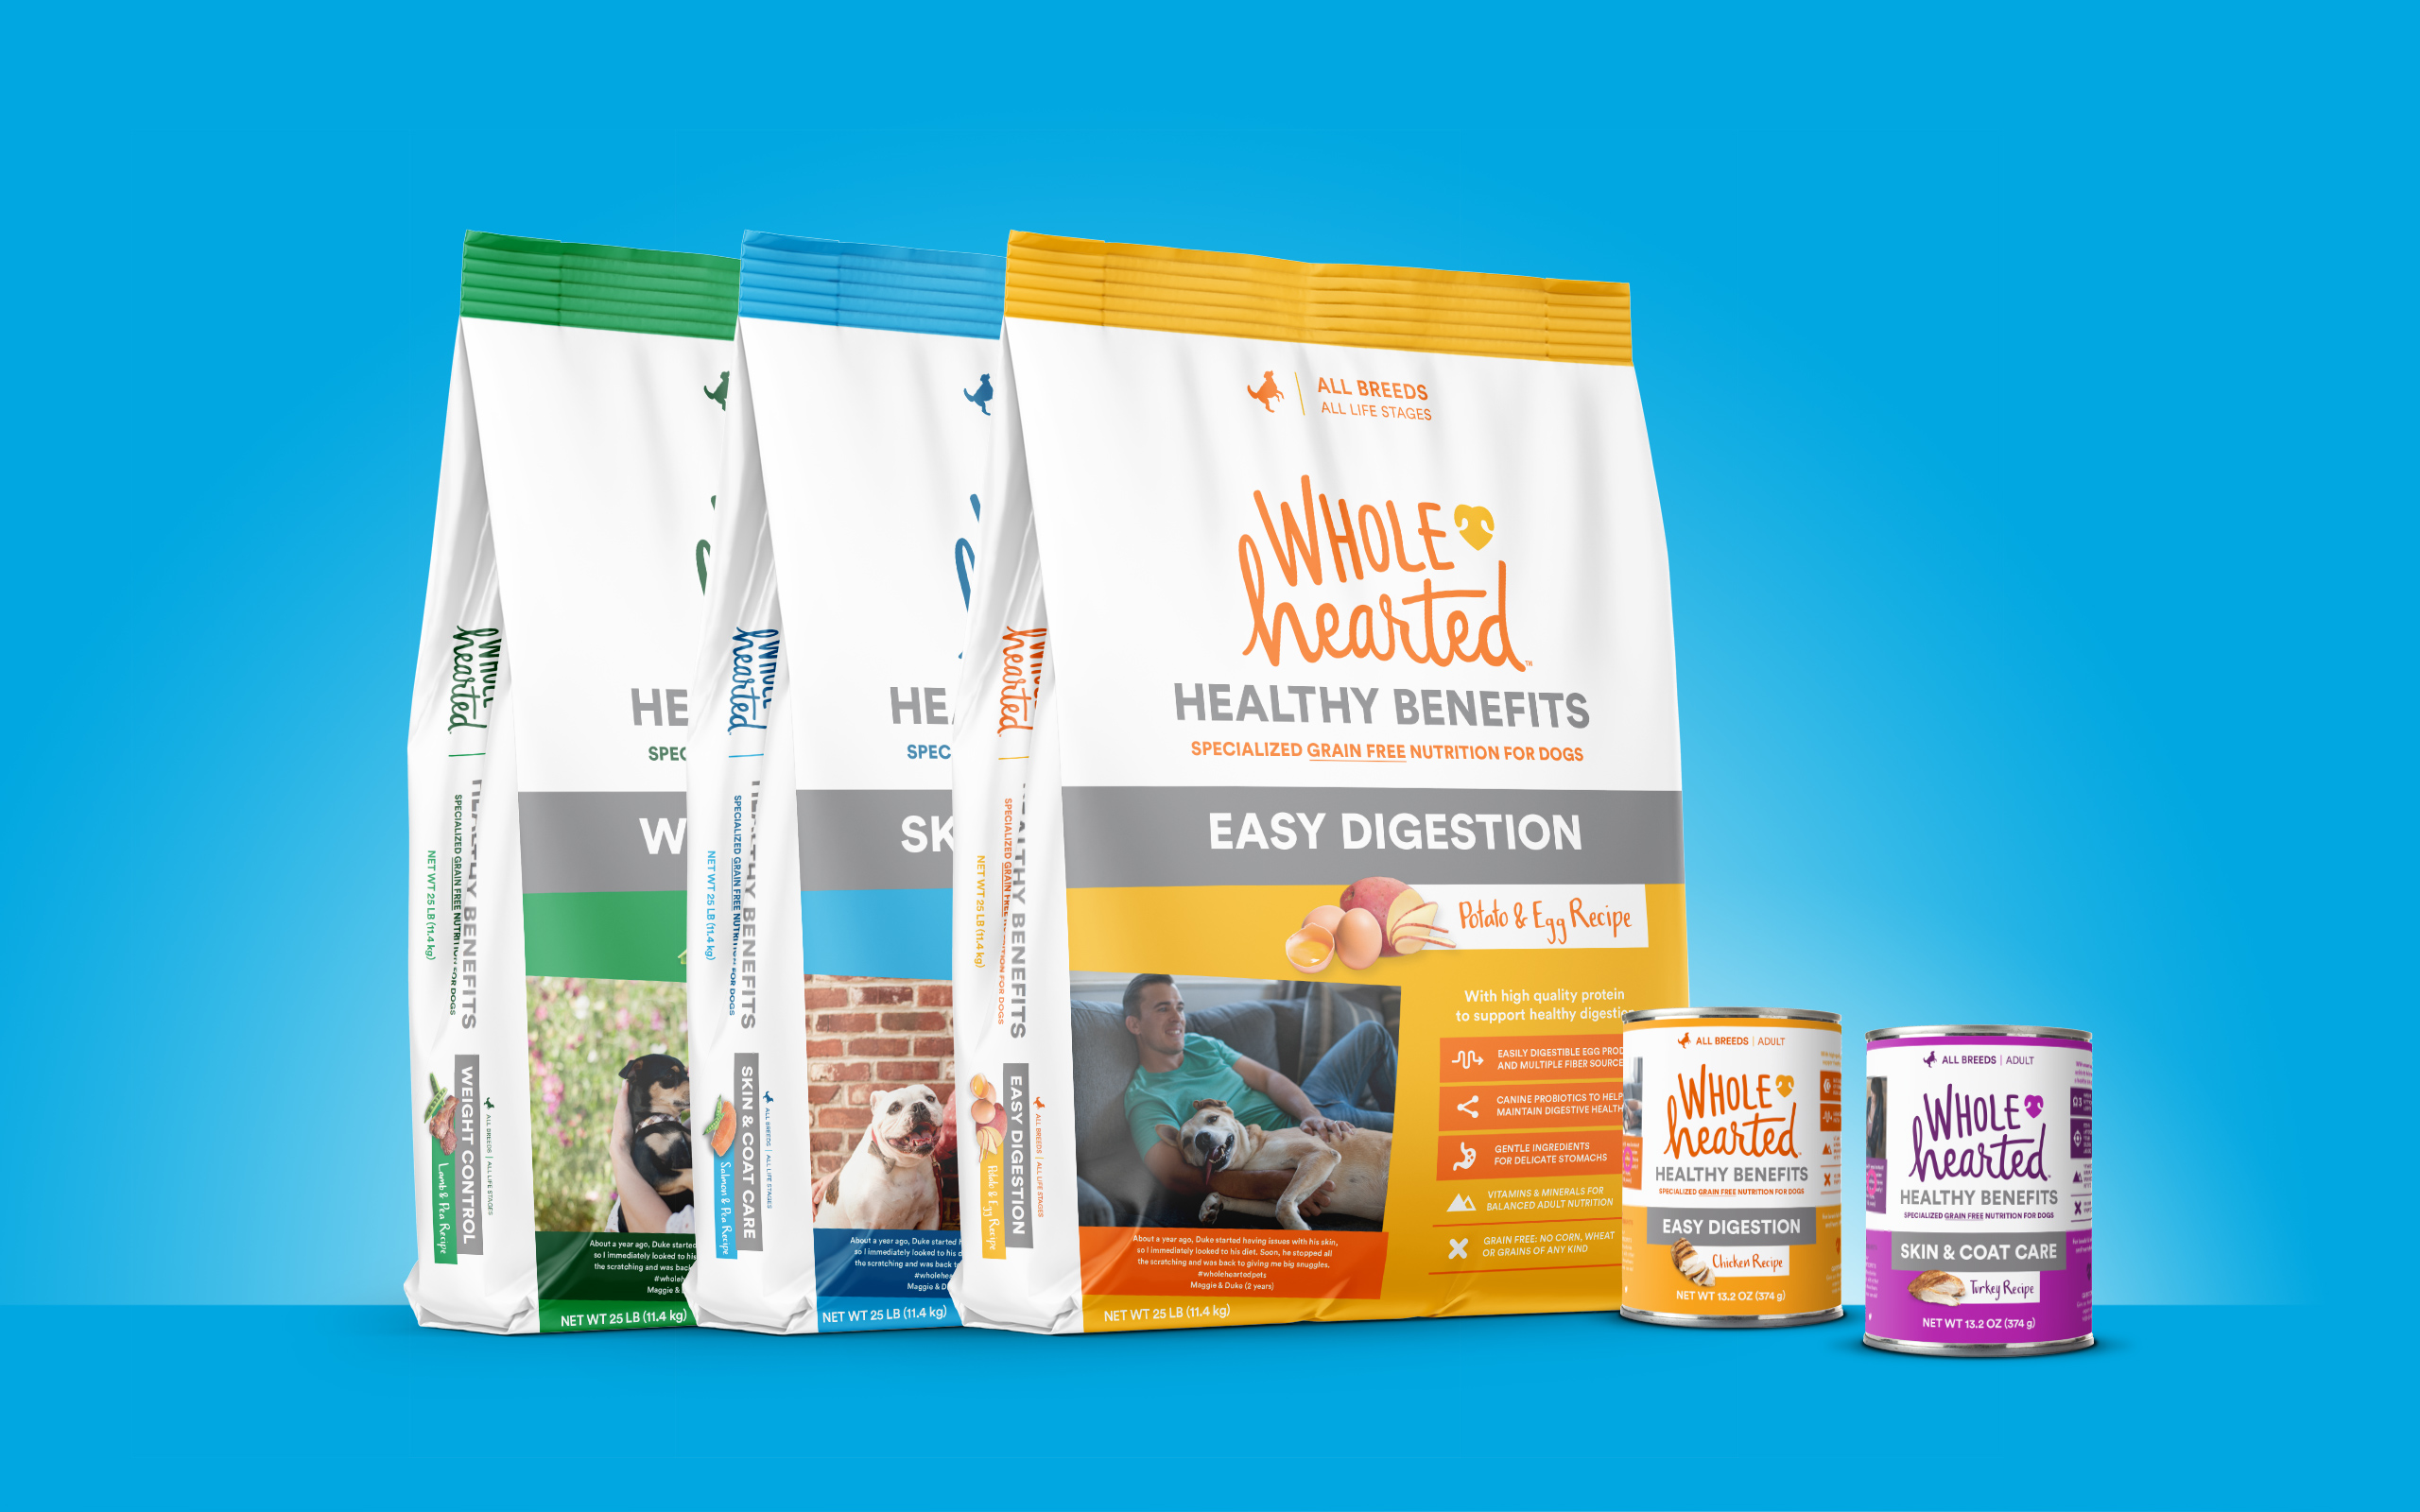 WholeHearted Healthy Benefits Pet Food